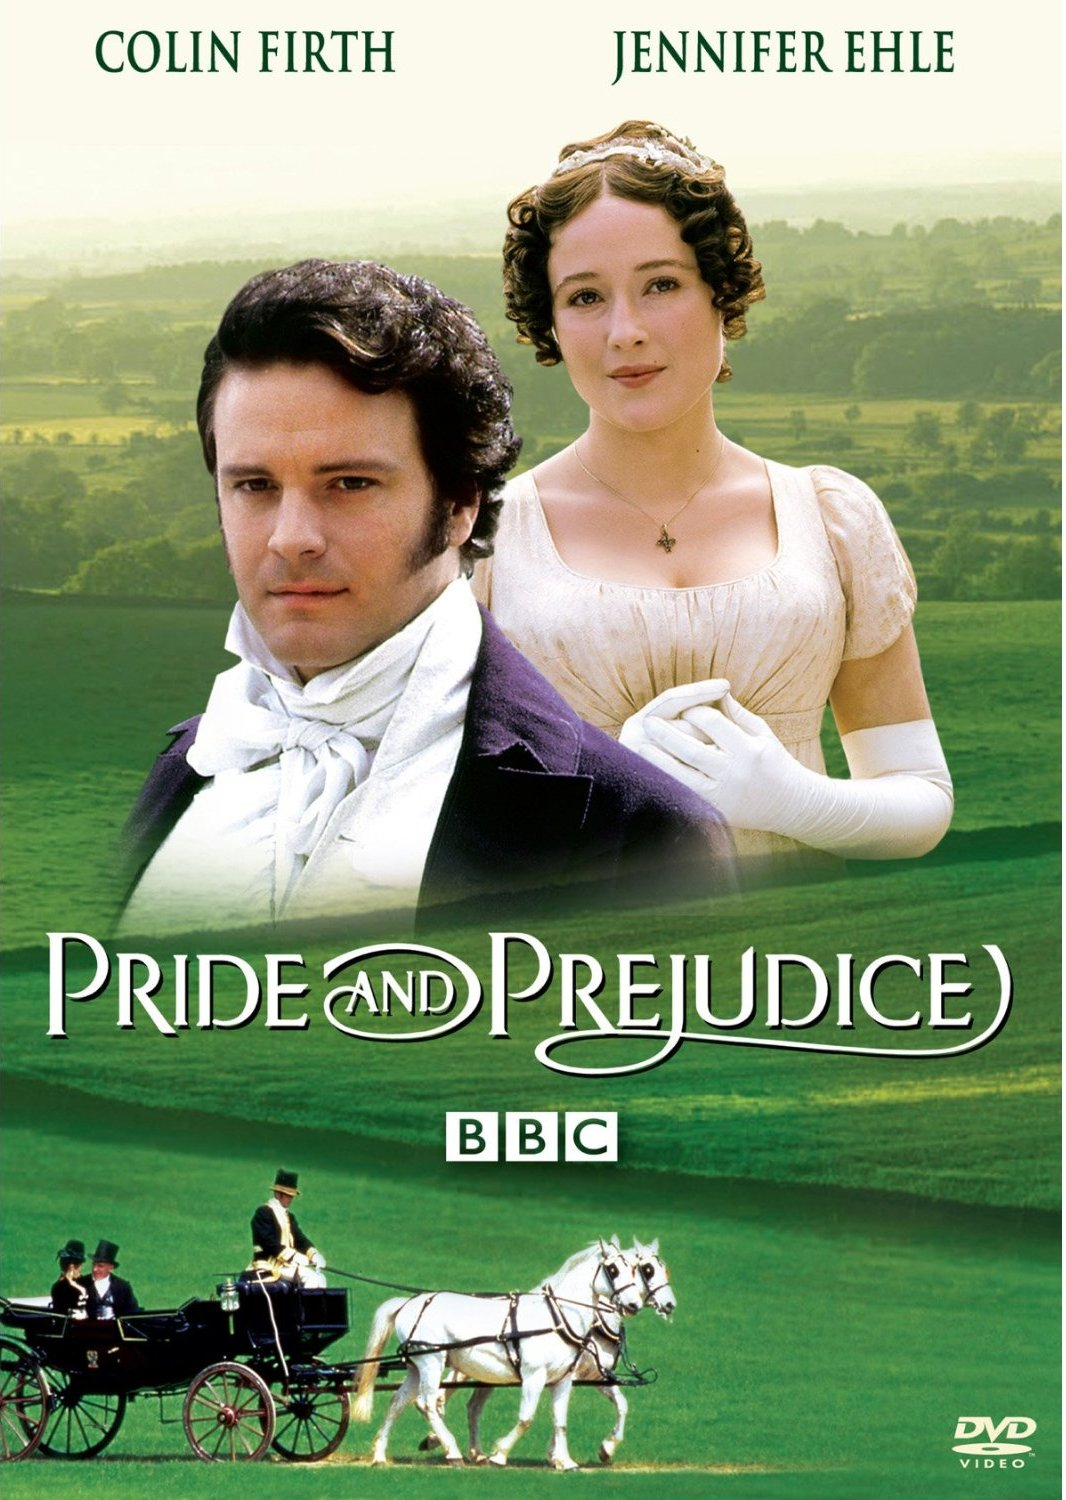 an overview of the mans society in the novel pride and prejudice by jane austen From the president professor janet todd another good year at lucy cavendish we had immense pride in seeing our students graduate at the senate house in june.